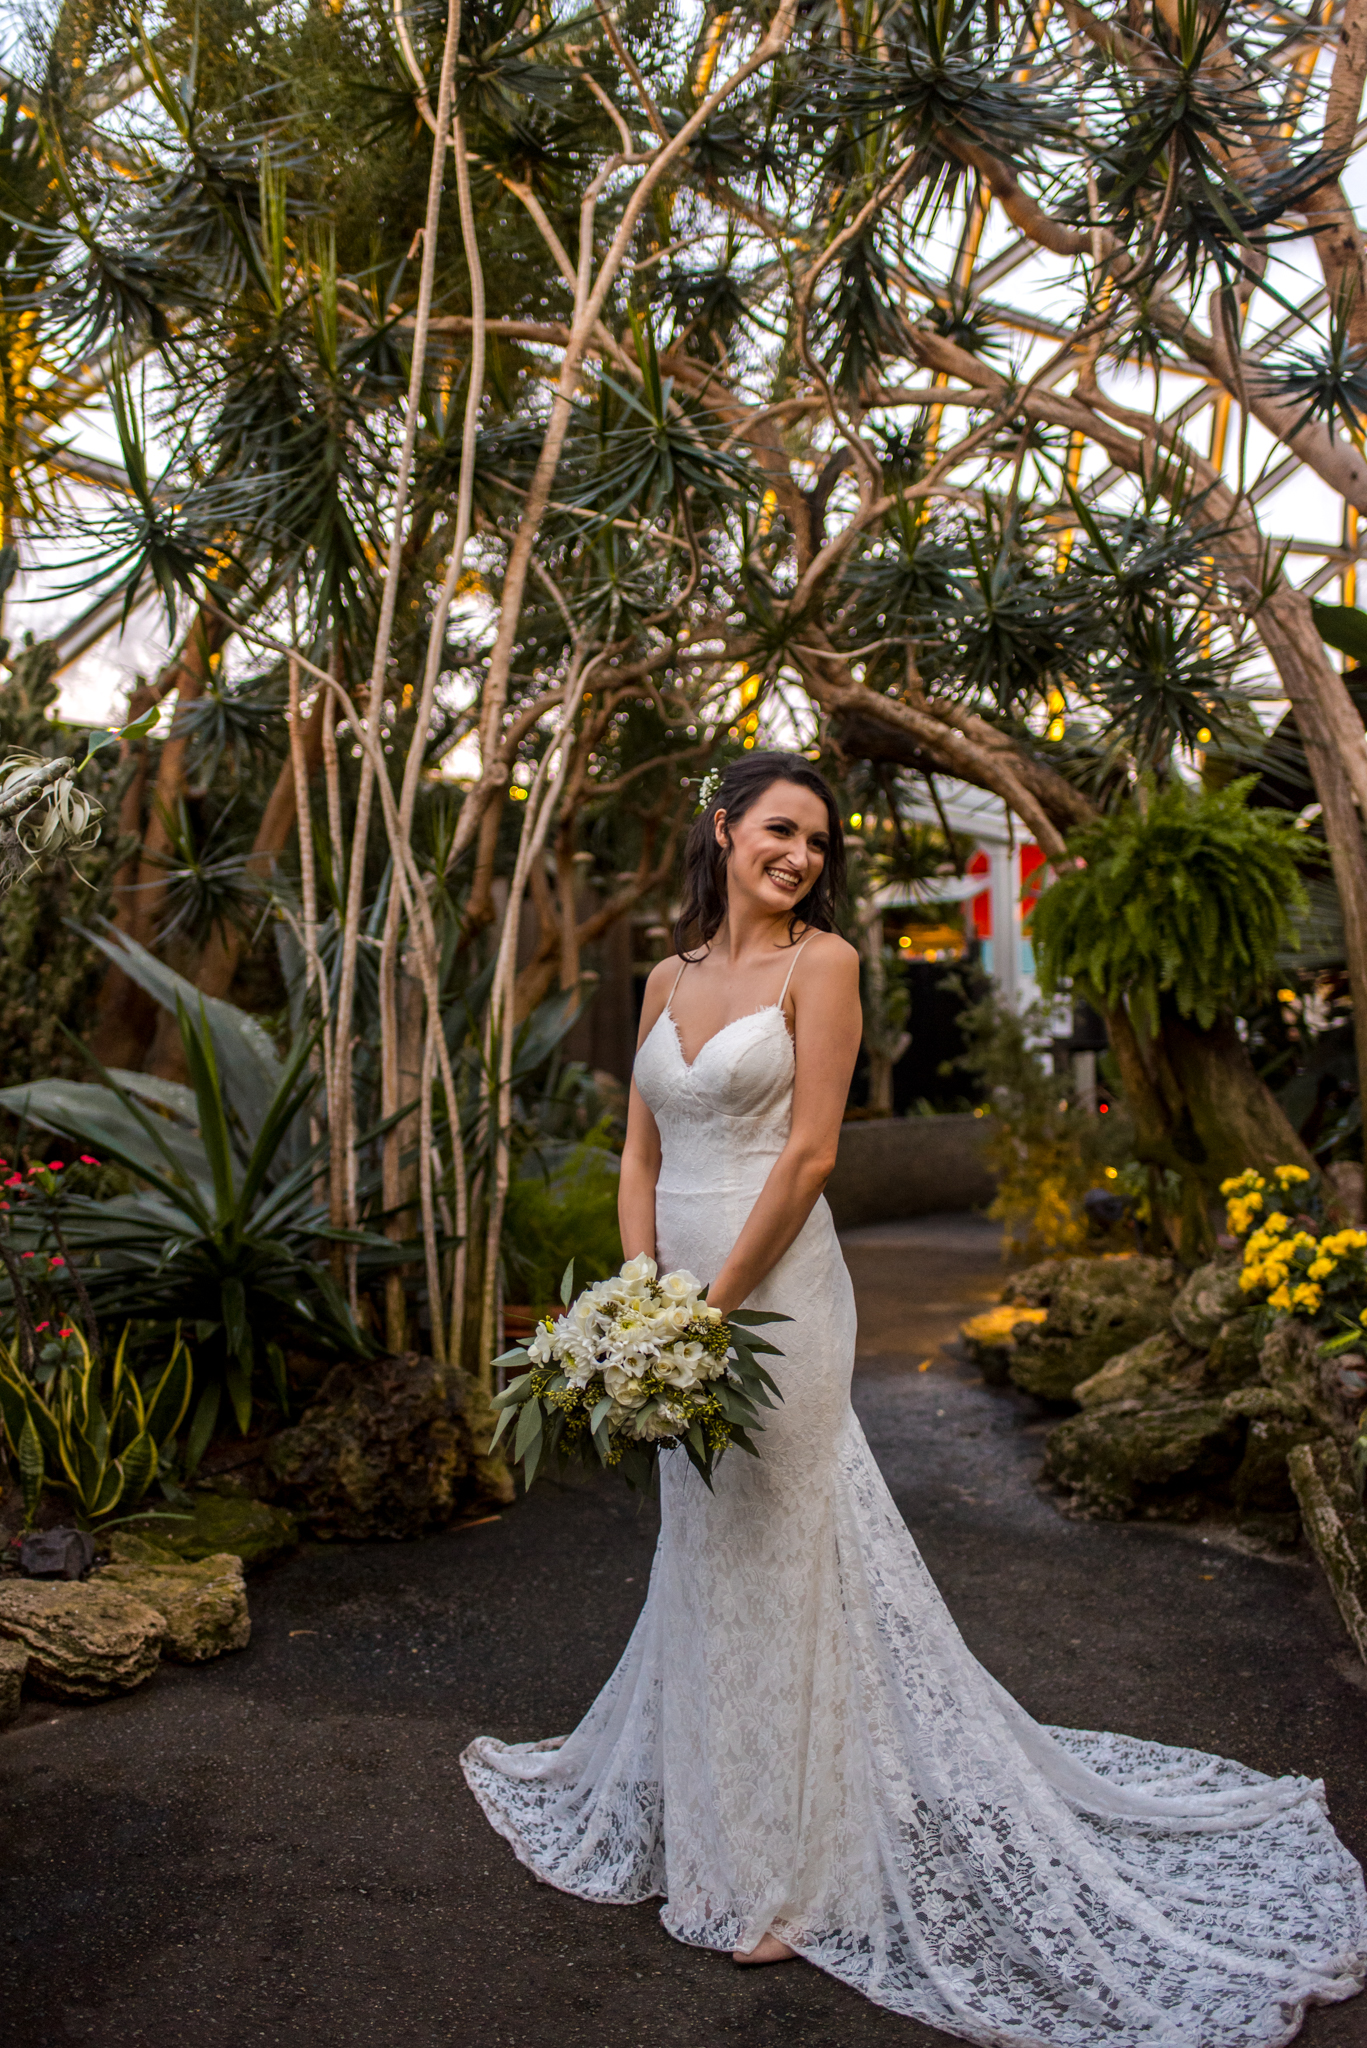 Queen Elizabeth Park Wedding Photographer-74.jpg